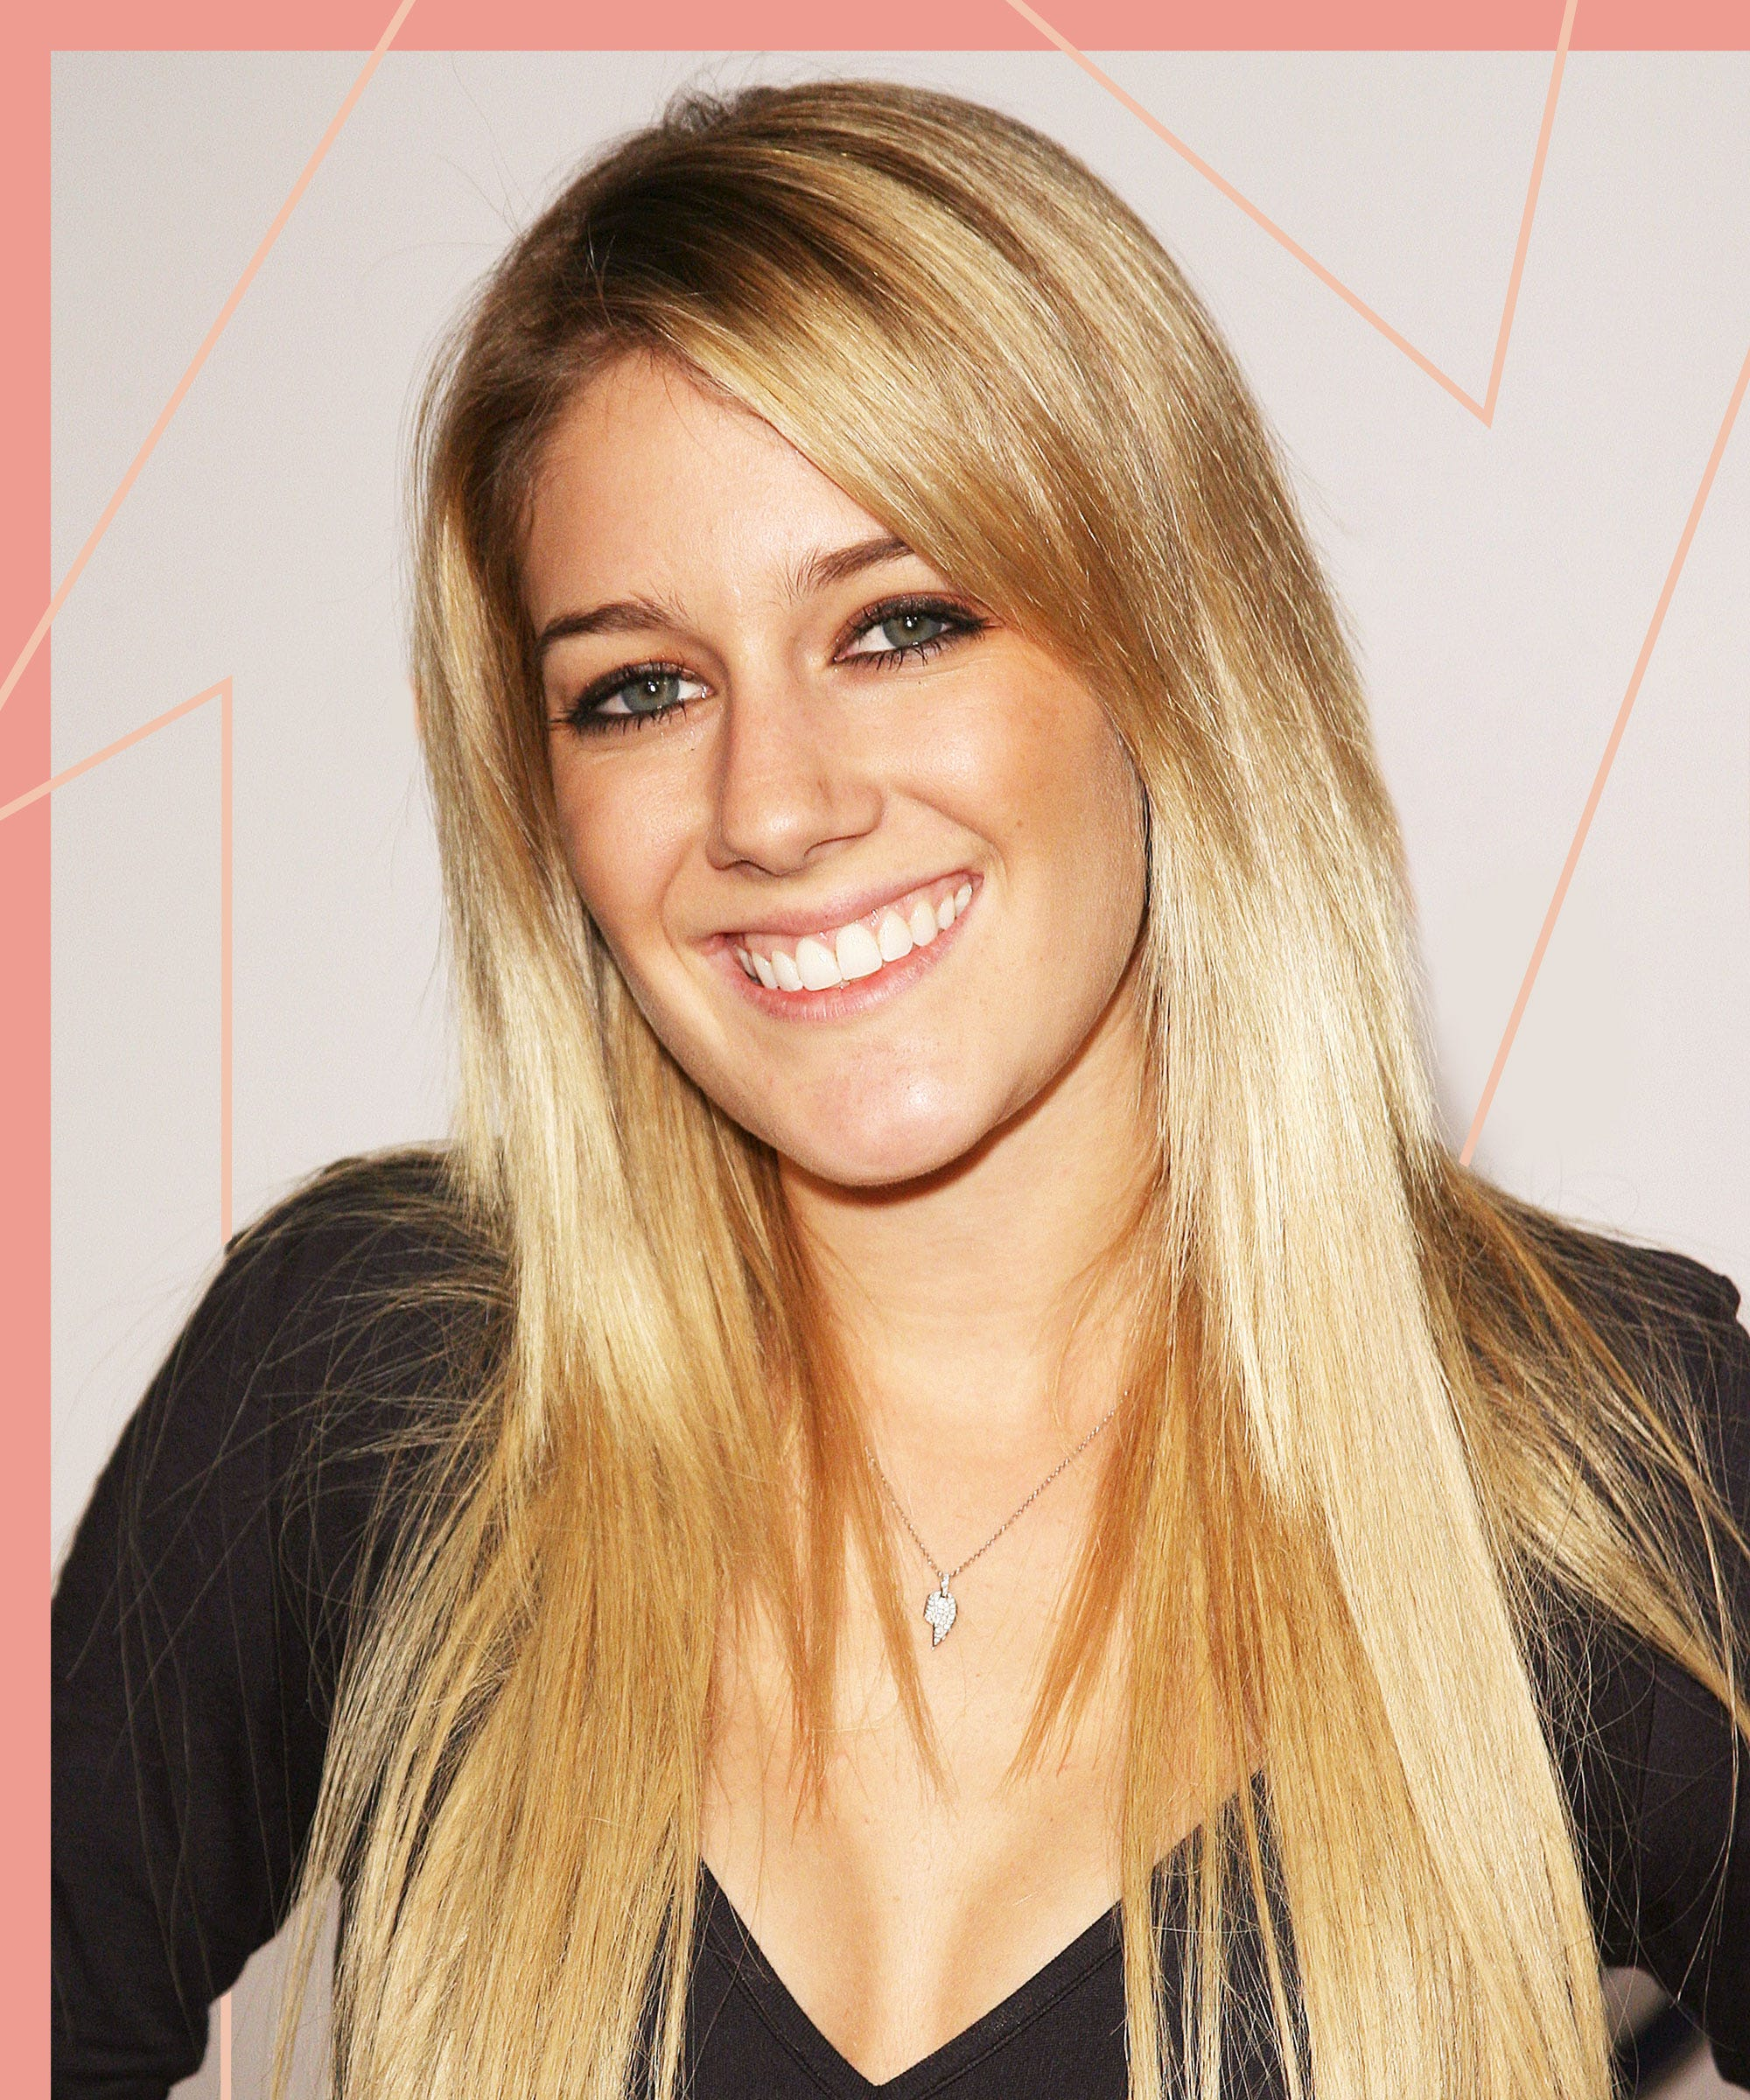 The Hills Cast Are All Legitimately Grown Up Now